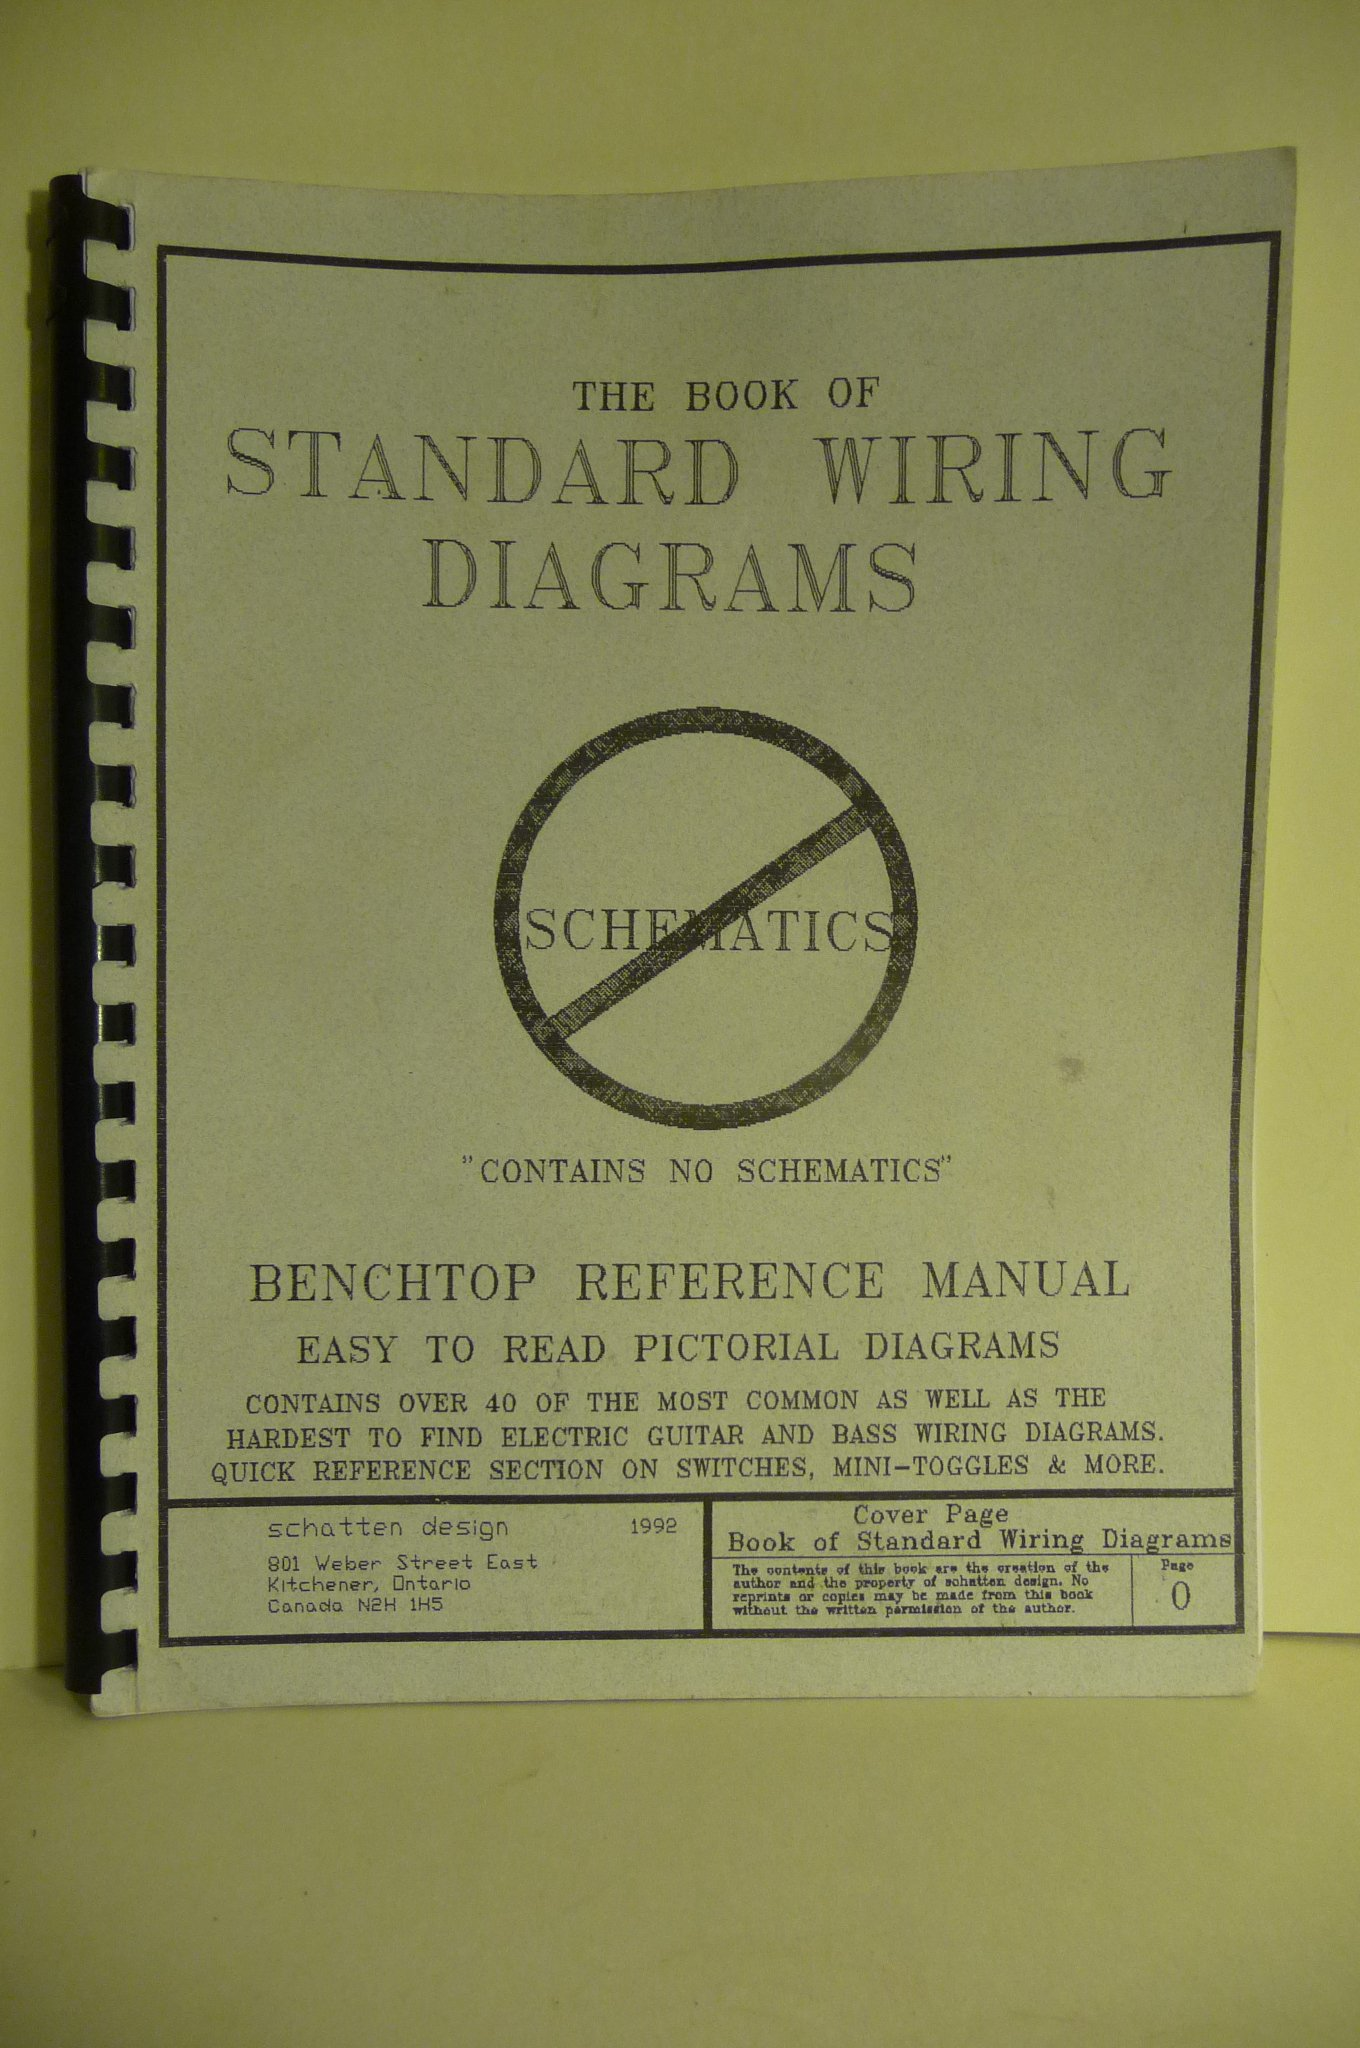 81WEzjYIb4L the new book of standard wiring diagrams benchtop reference  at eliteediting.co